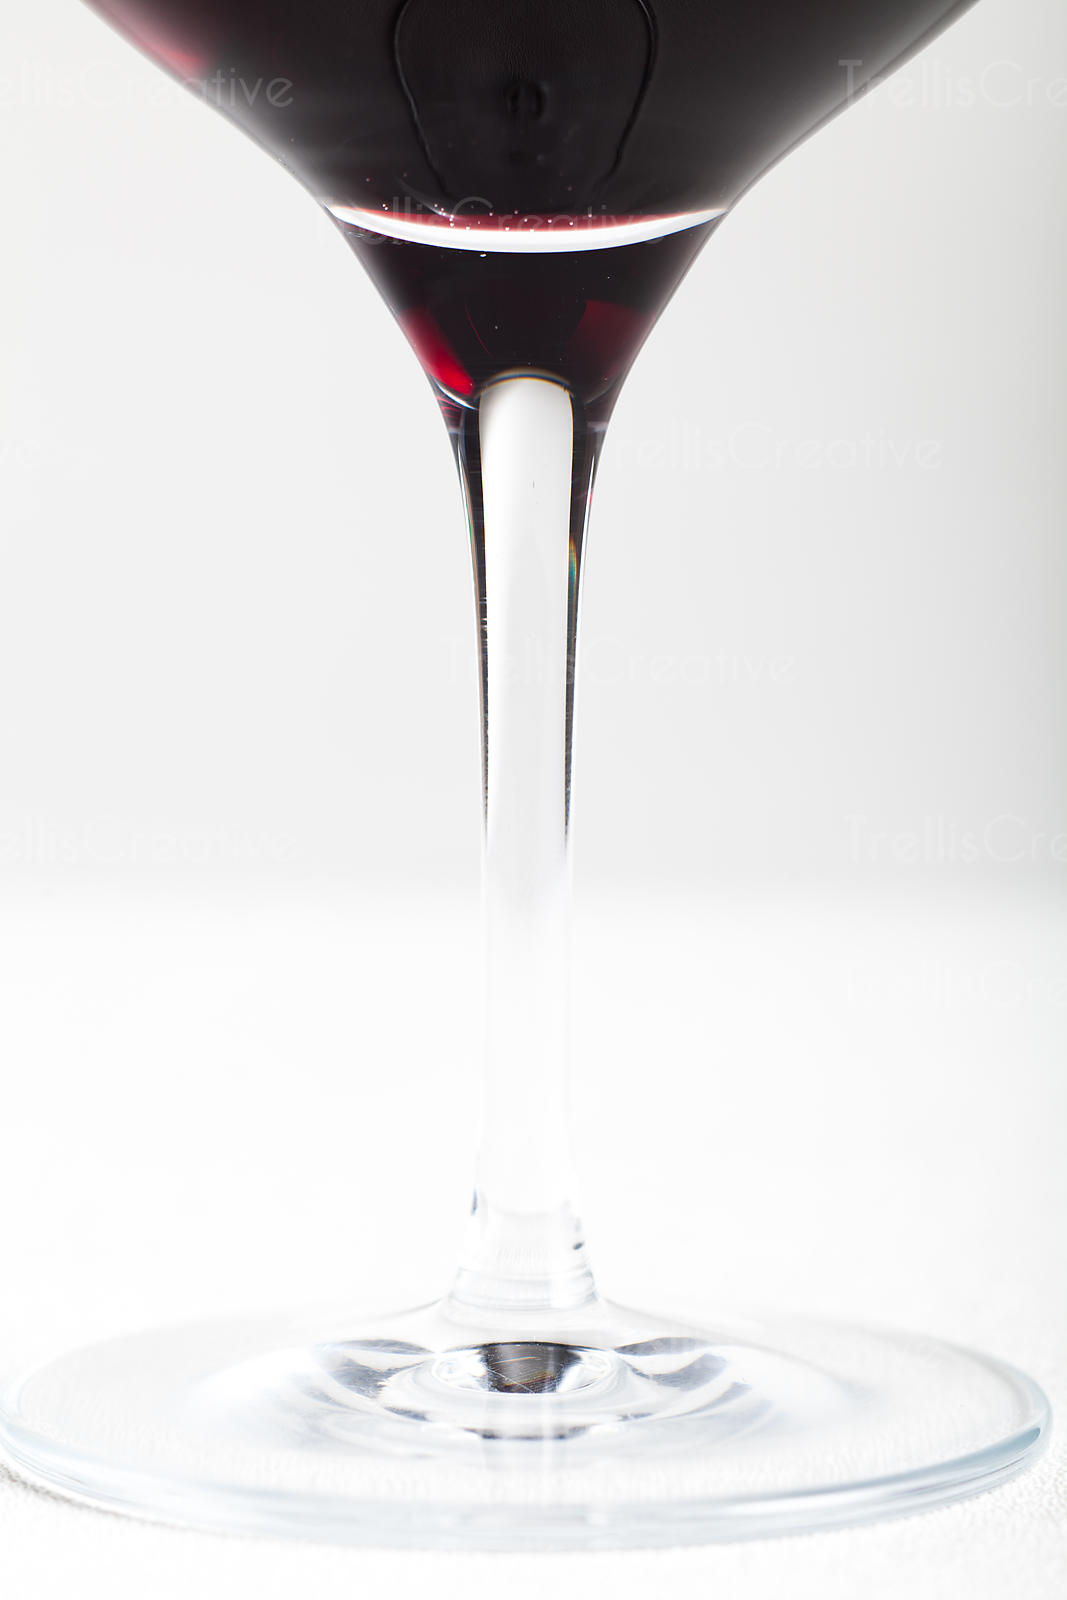 Detail shot of red wine in a glass on a white background